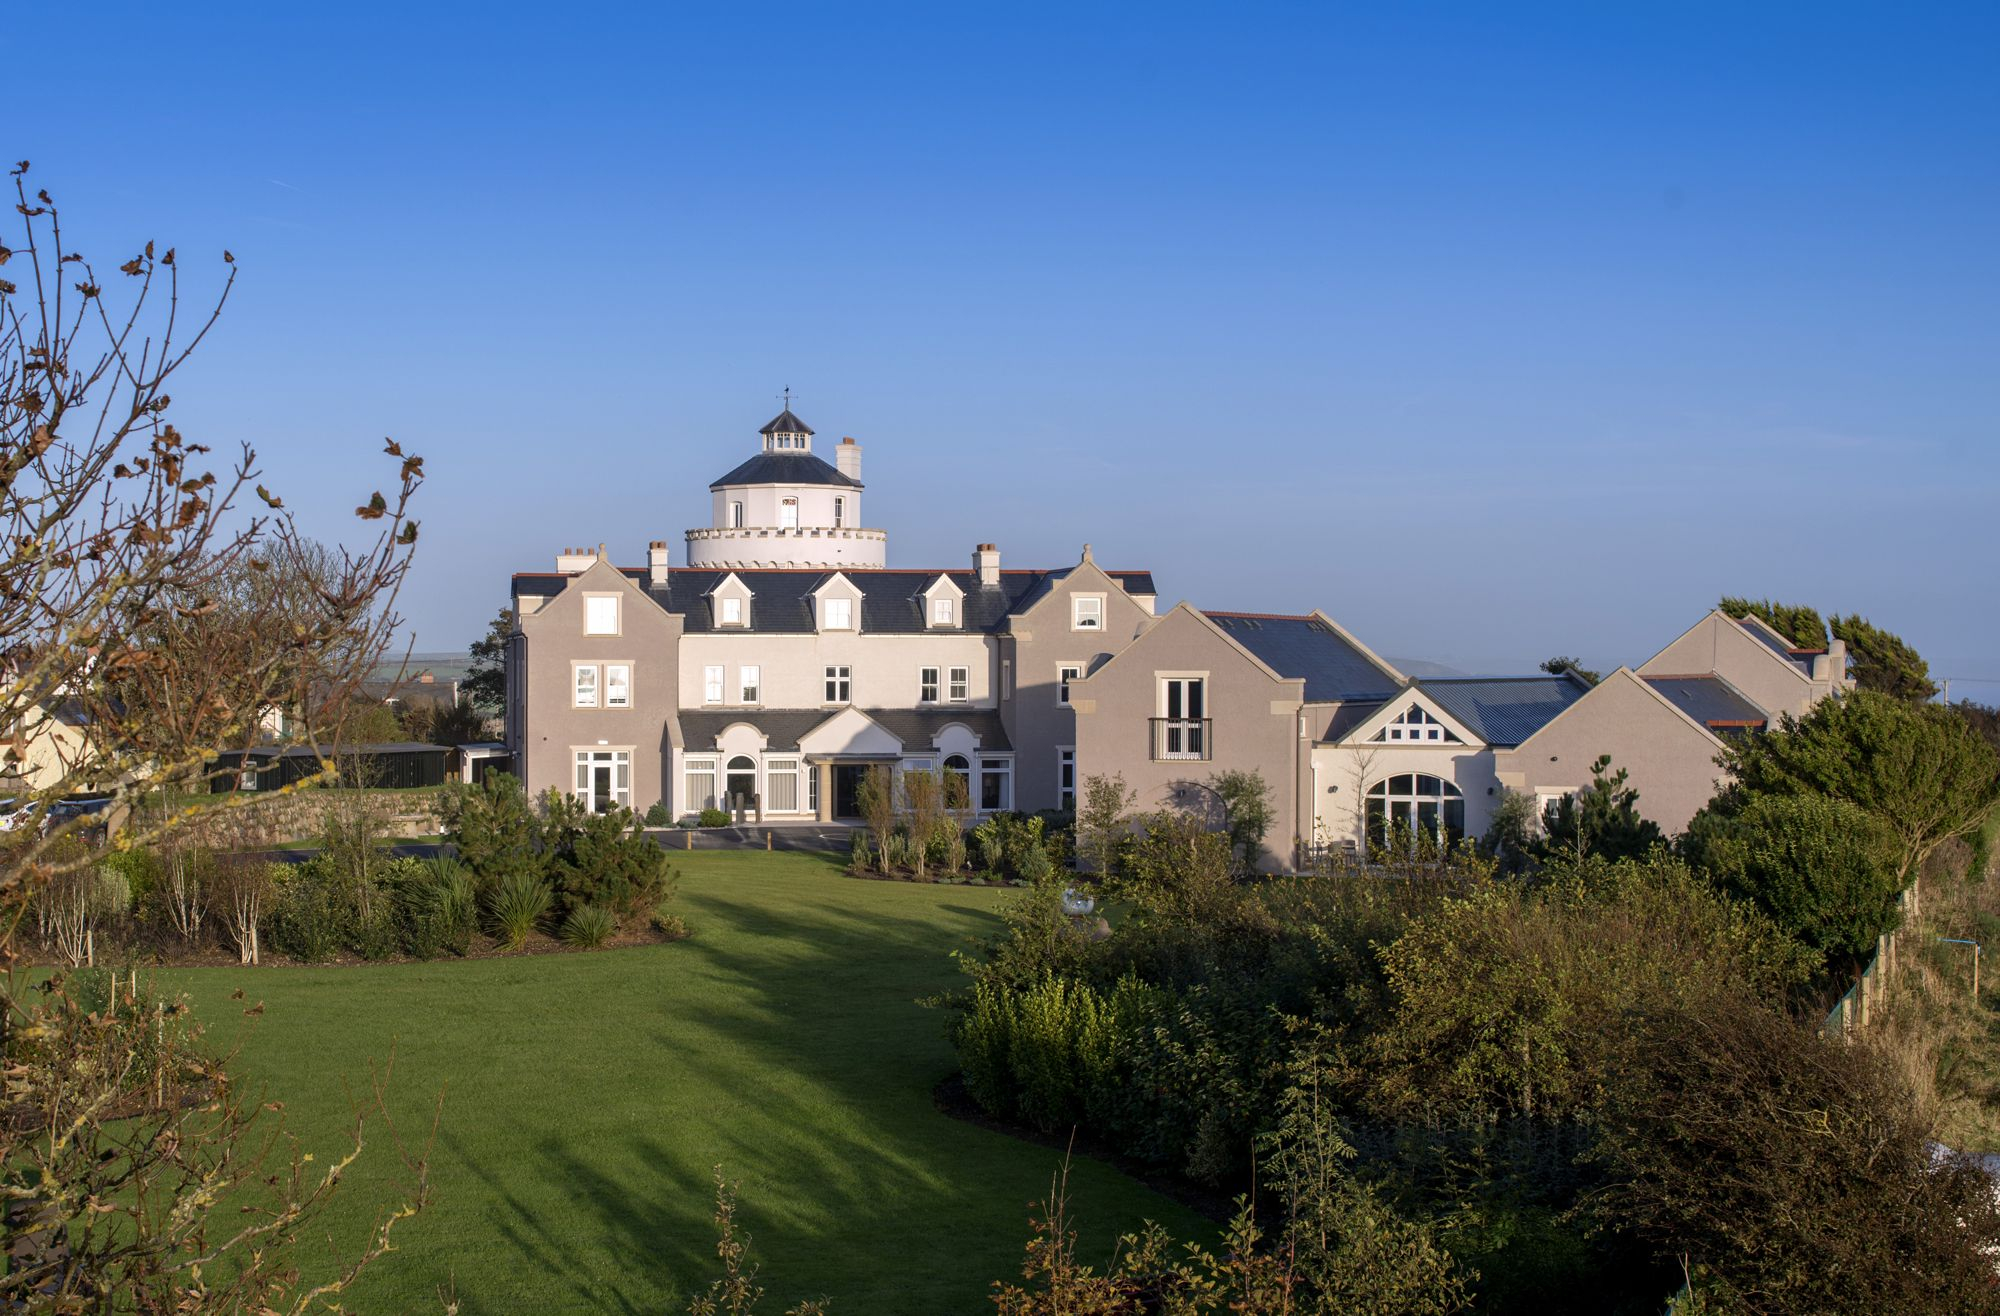 Hotels in St Davids holidays at Cool Places